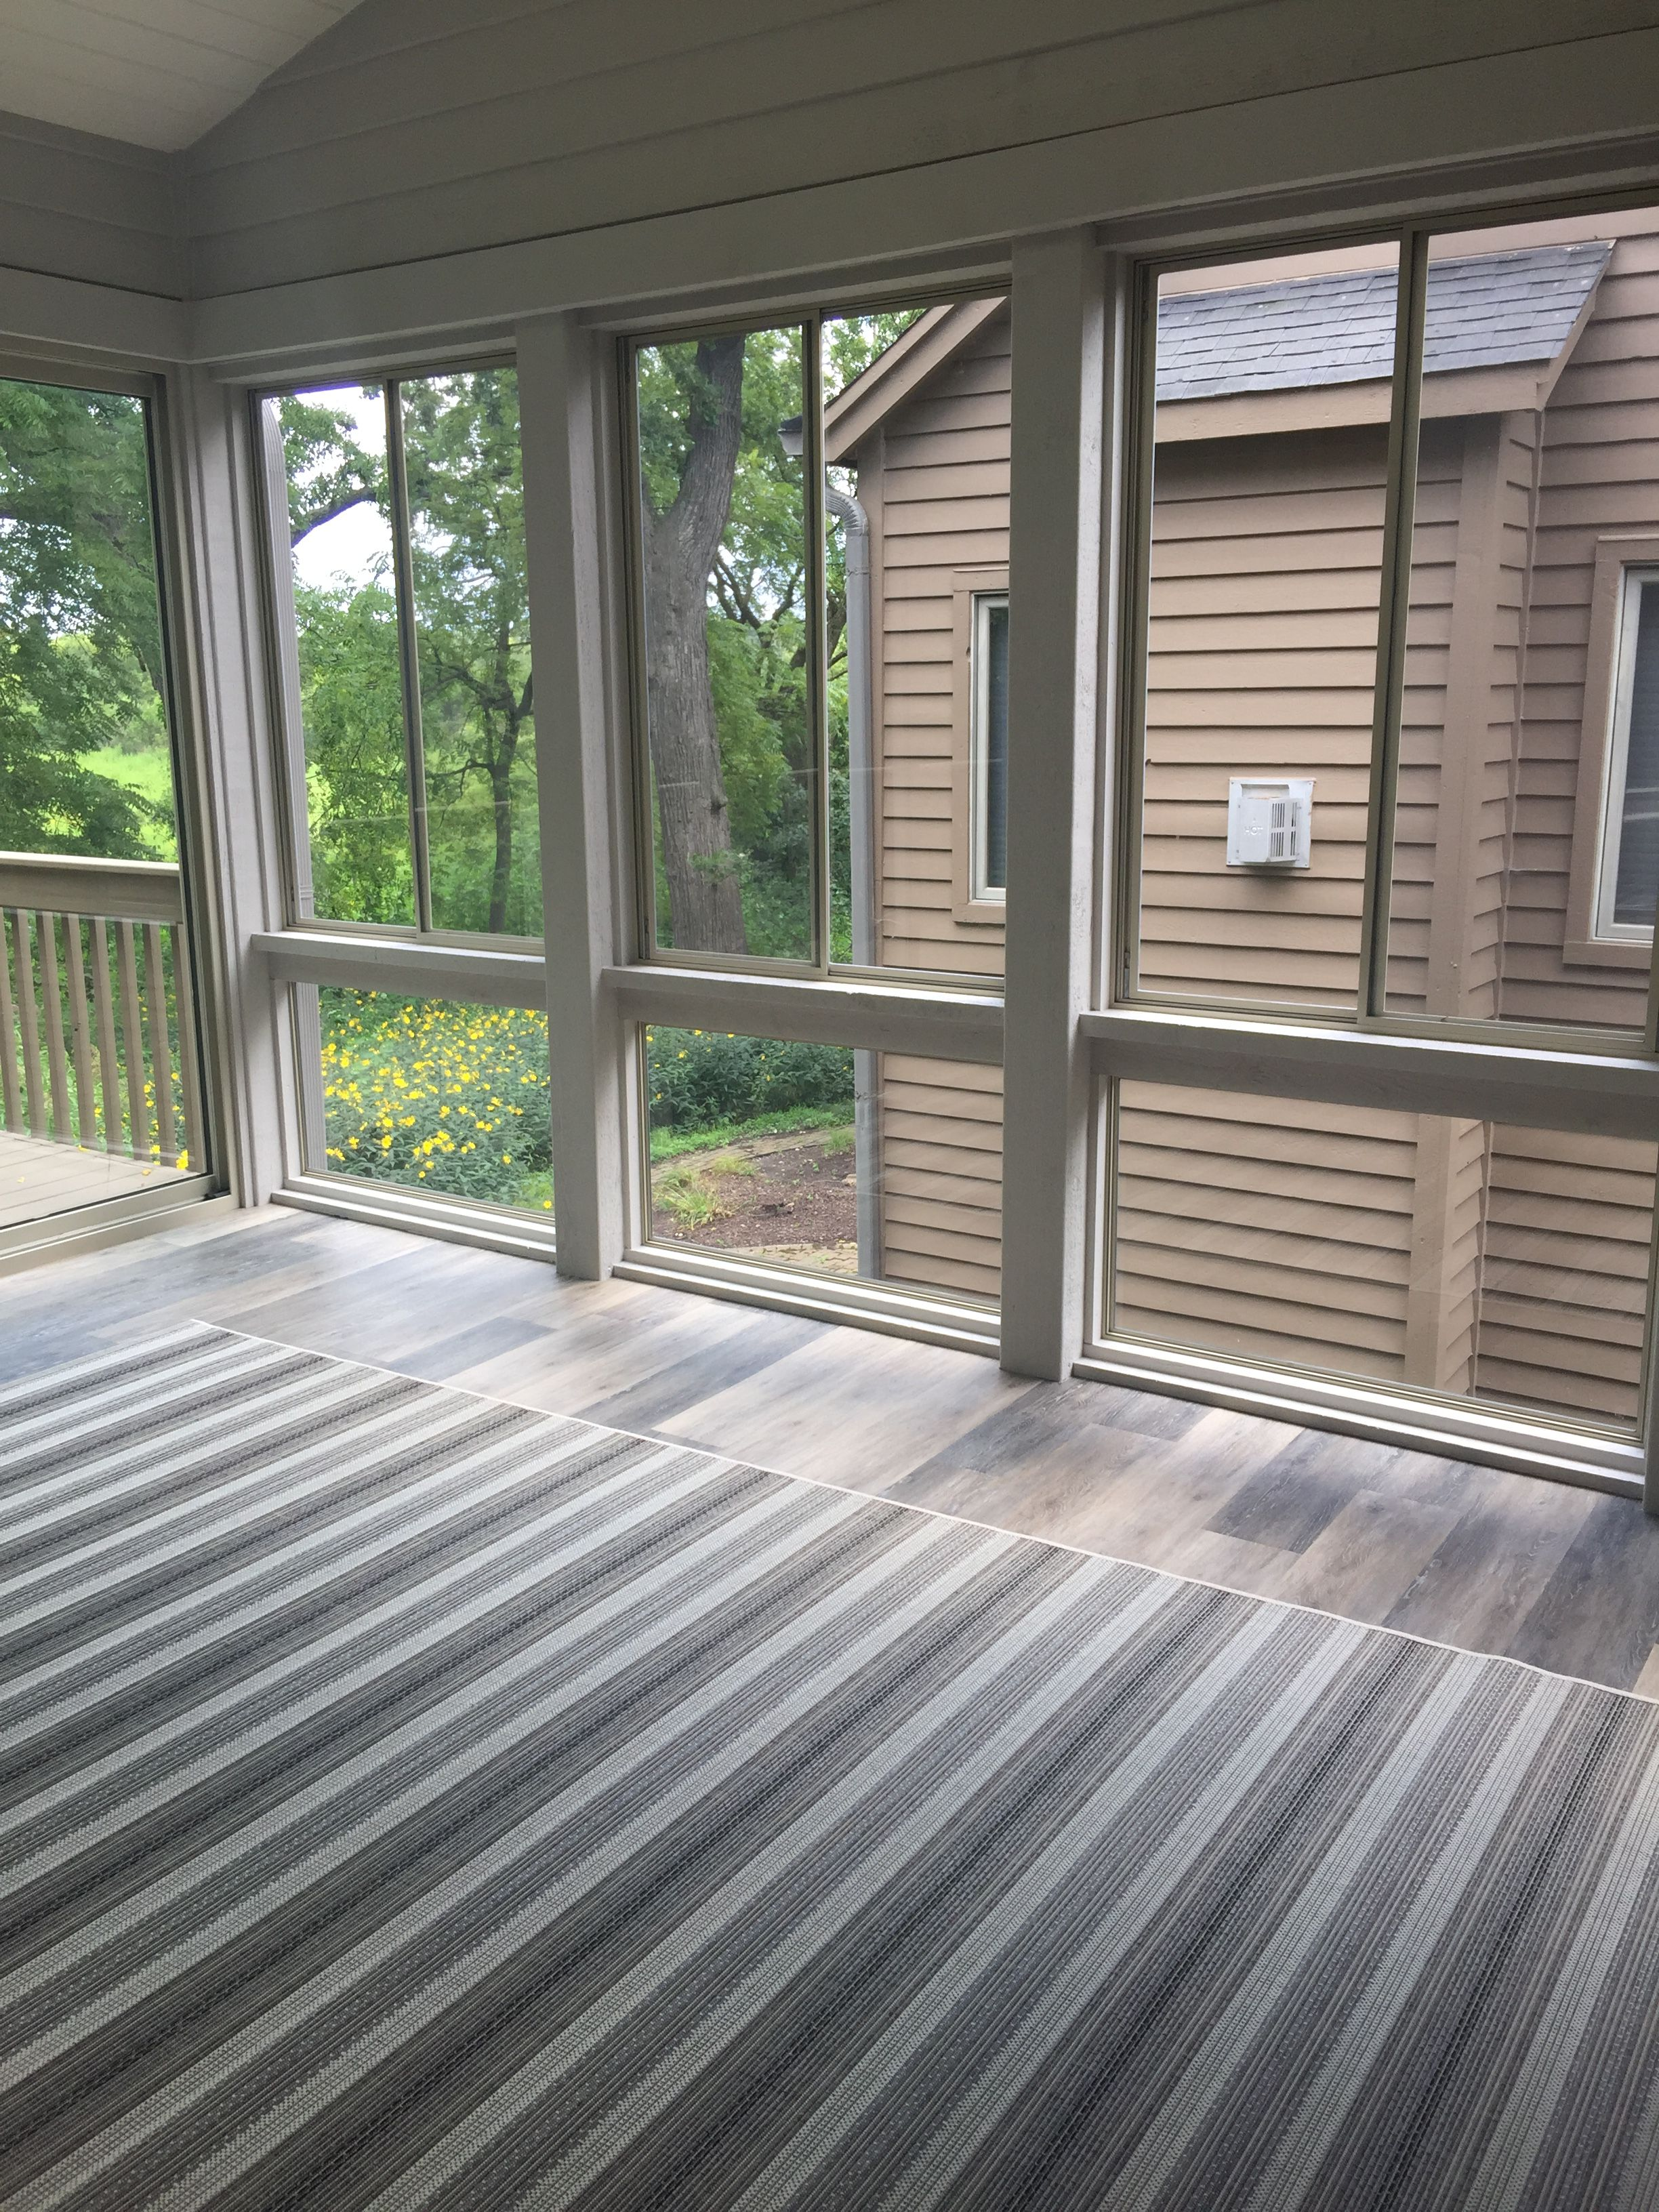 Casco Industries Storm Windows Installed Within This Porch